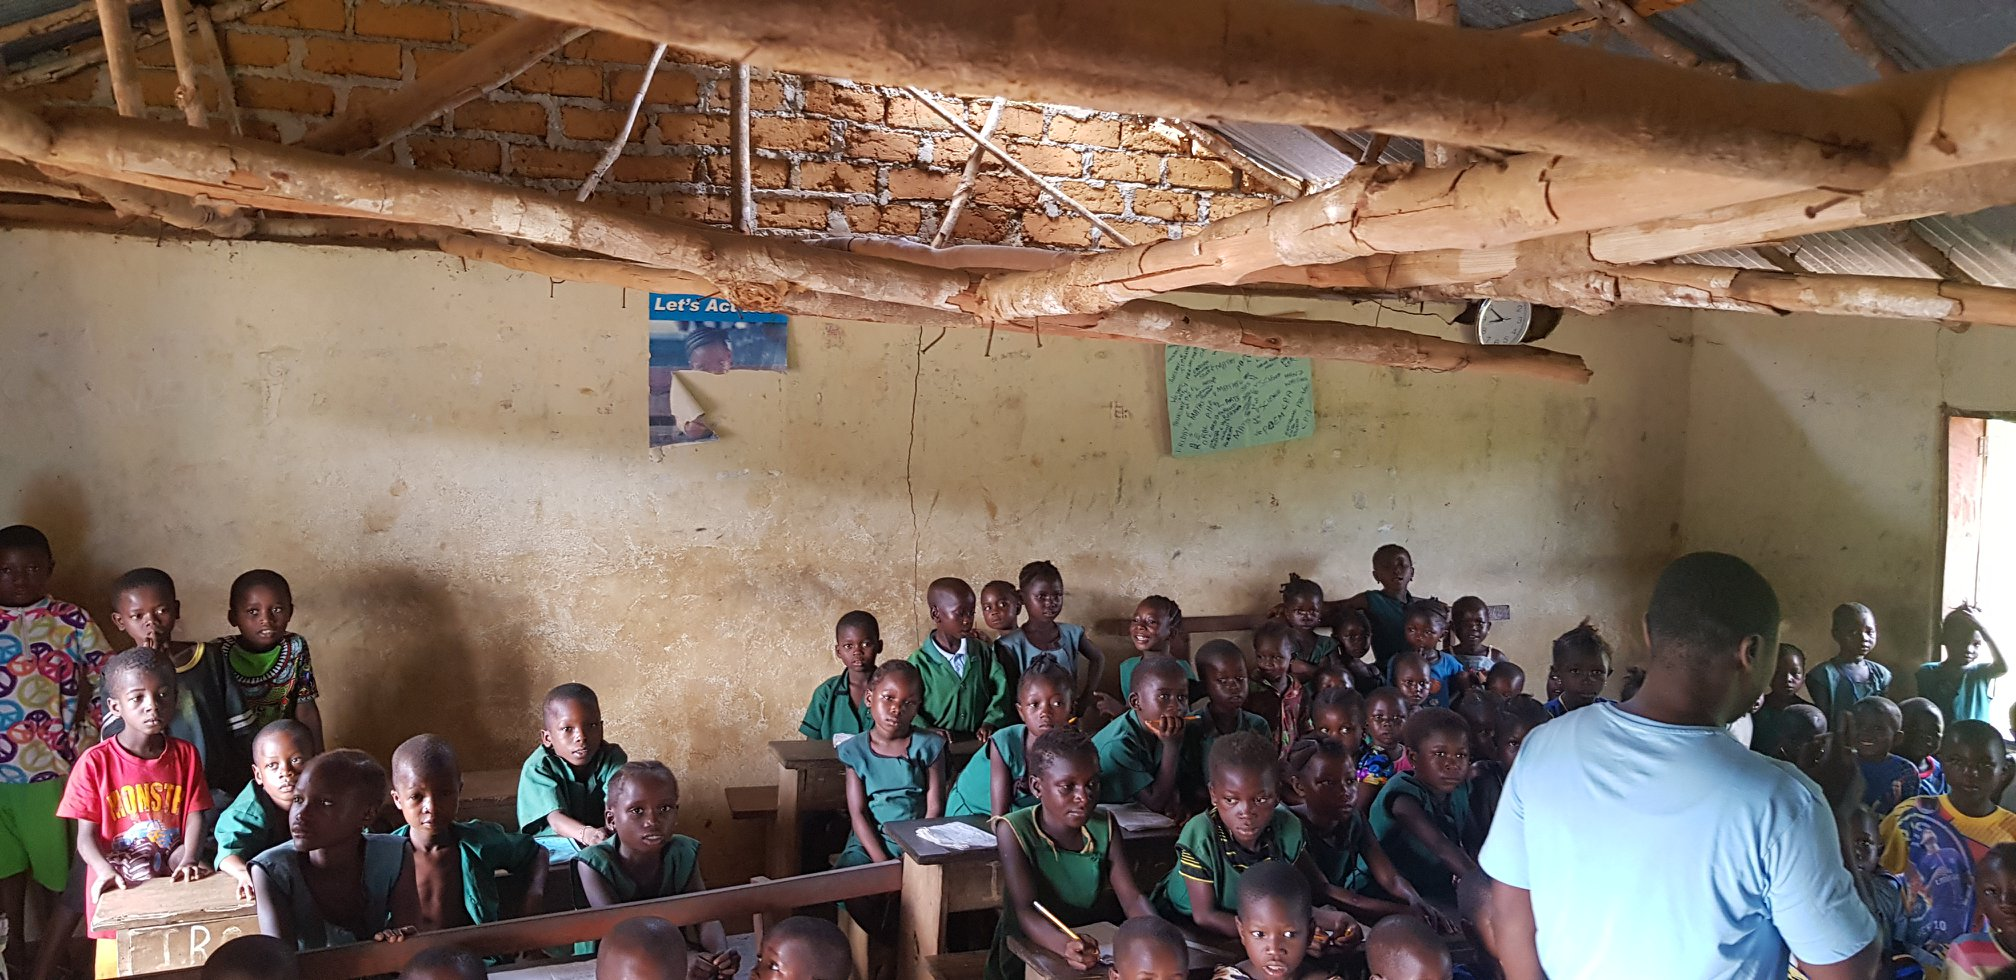 Poorly built school putting children at risk